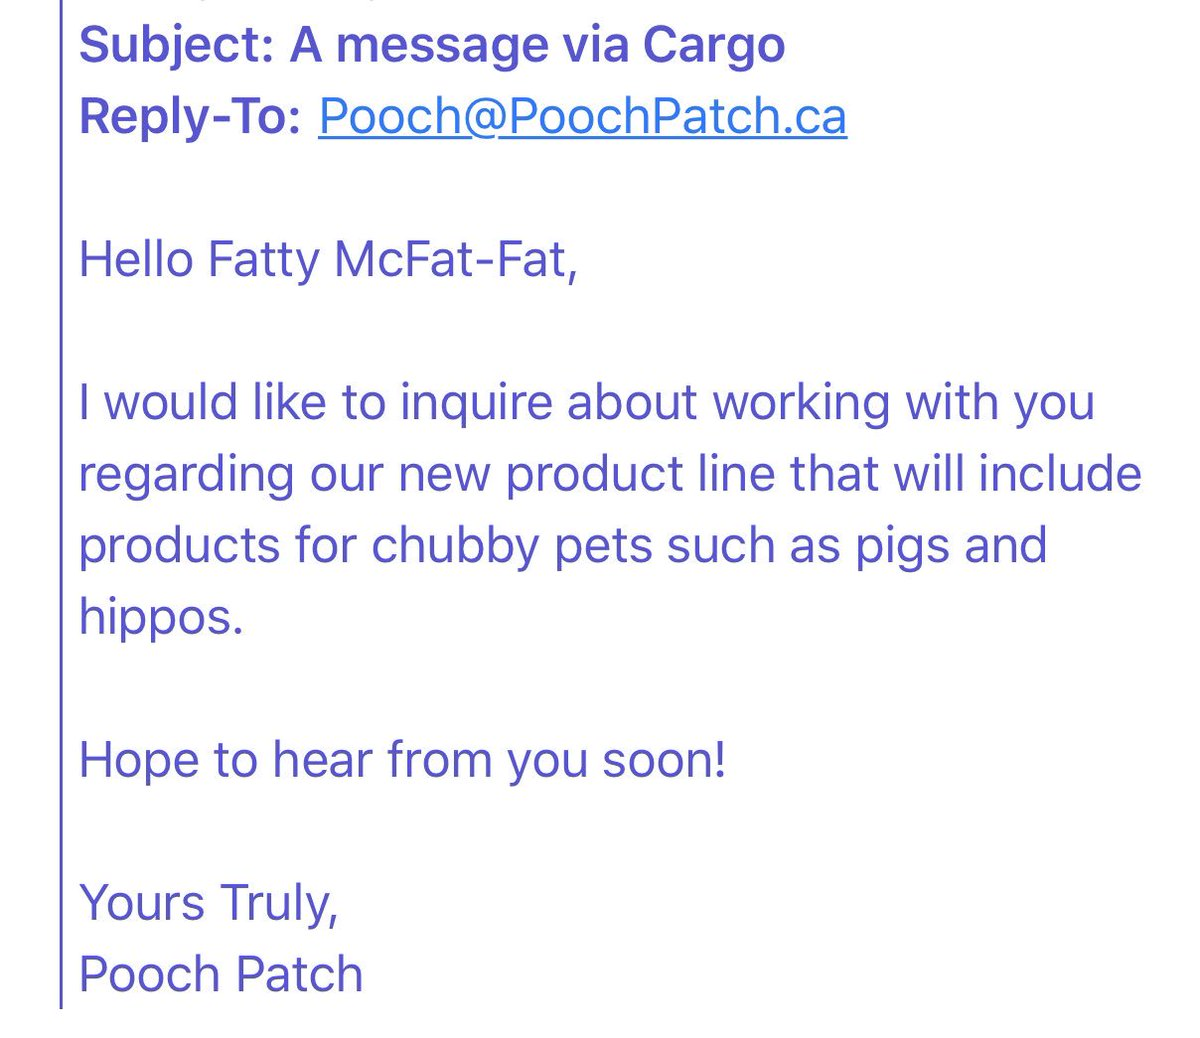 """Hours after company apologizes to customer after @globalnewsto  story, Pooch Patch owner sends another fat-shaming message by email. I've never seen anything quite like this. Calls her """"Fatty McFat-Fat"""". References """"products for chubby pets such as pigs and hippos"""".  Incredible."""